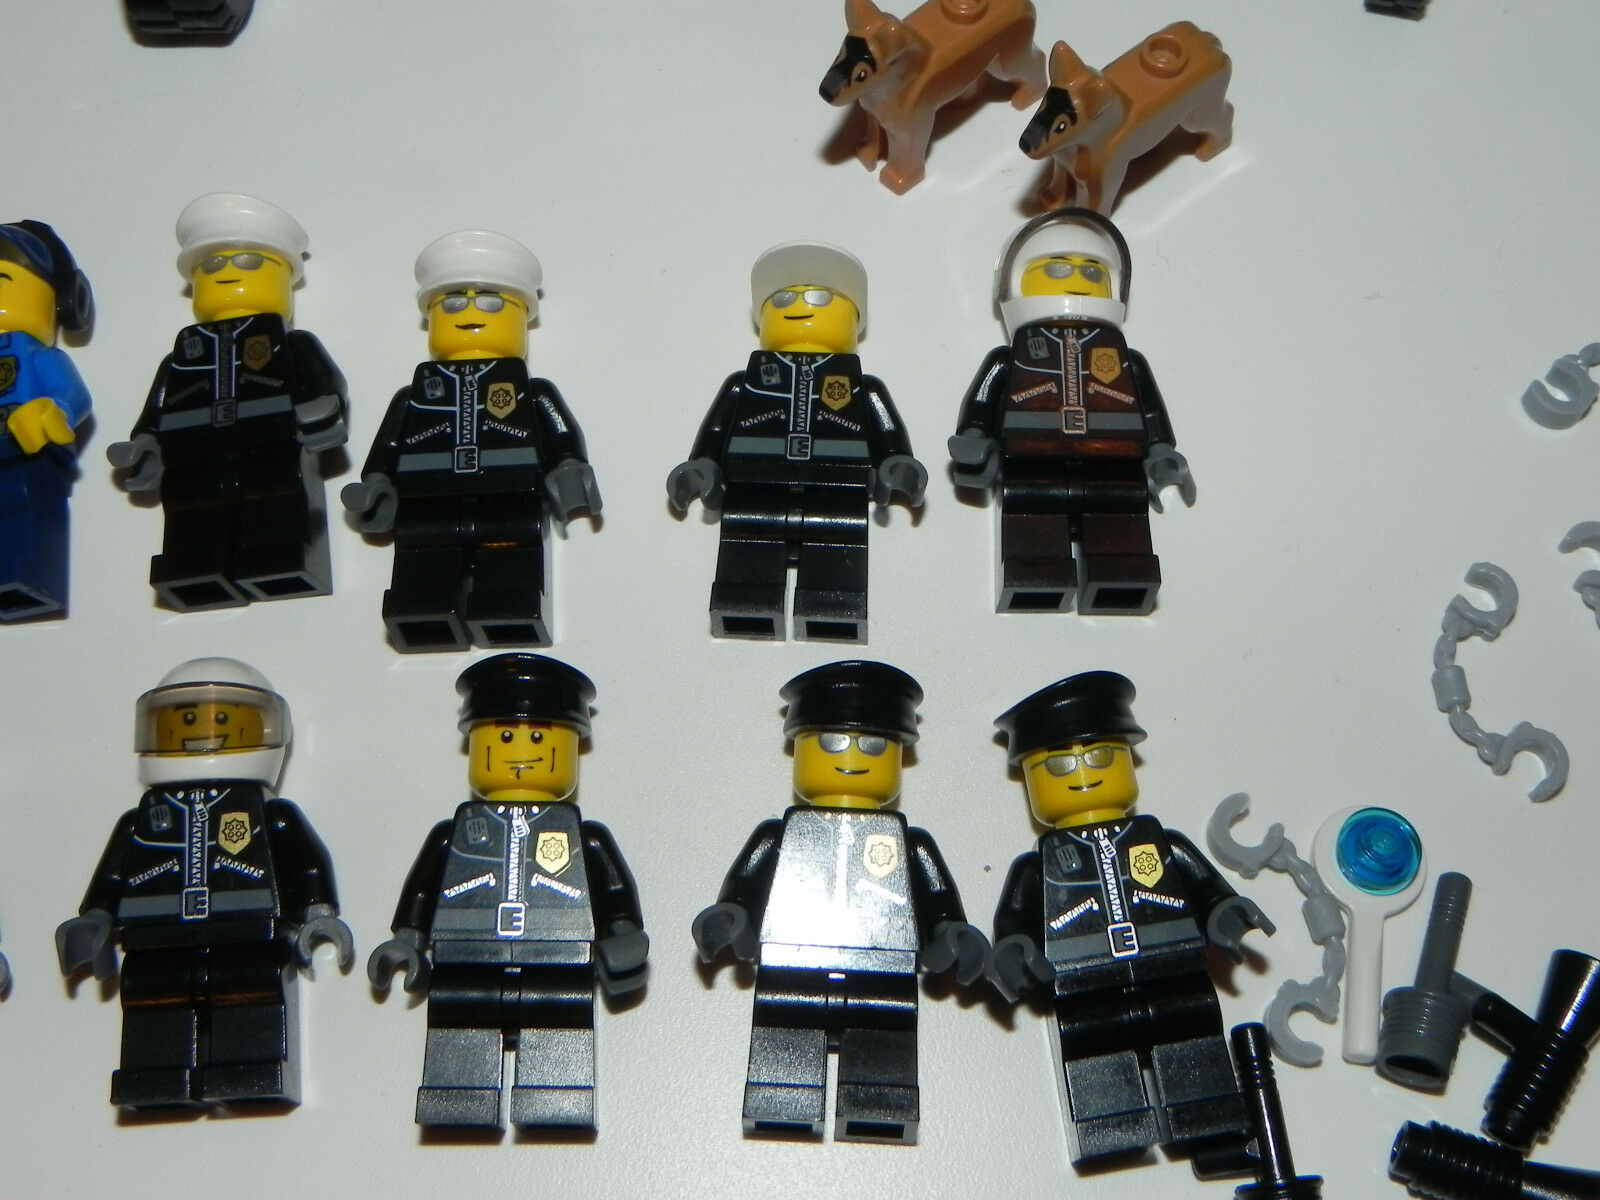 Lego Minifig Minifigure Minifigure Minifigure Lot of 11 Police Policemen Policeman 2 Dogs & Motorcycle 622ffa